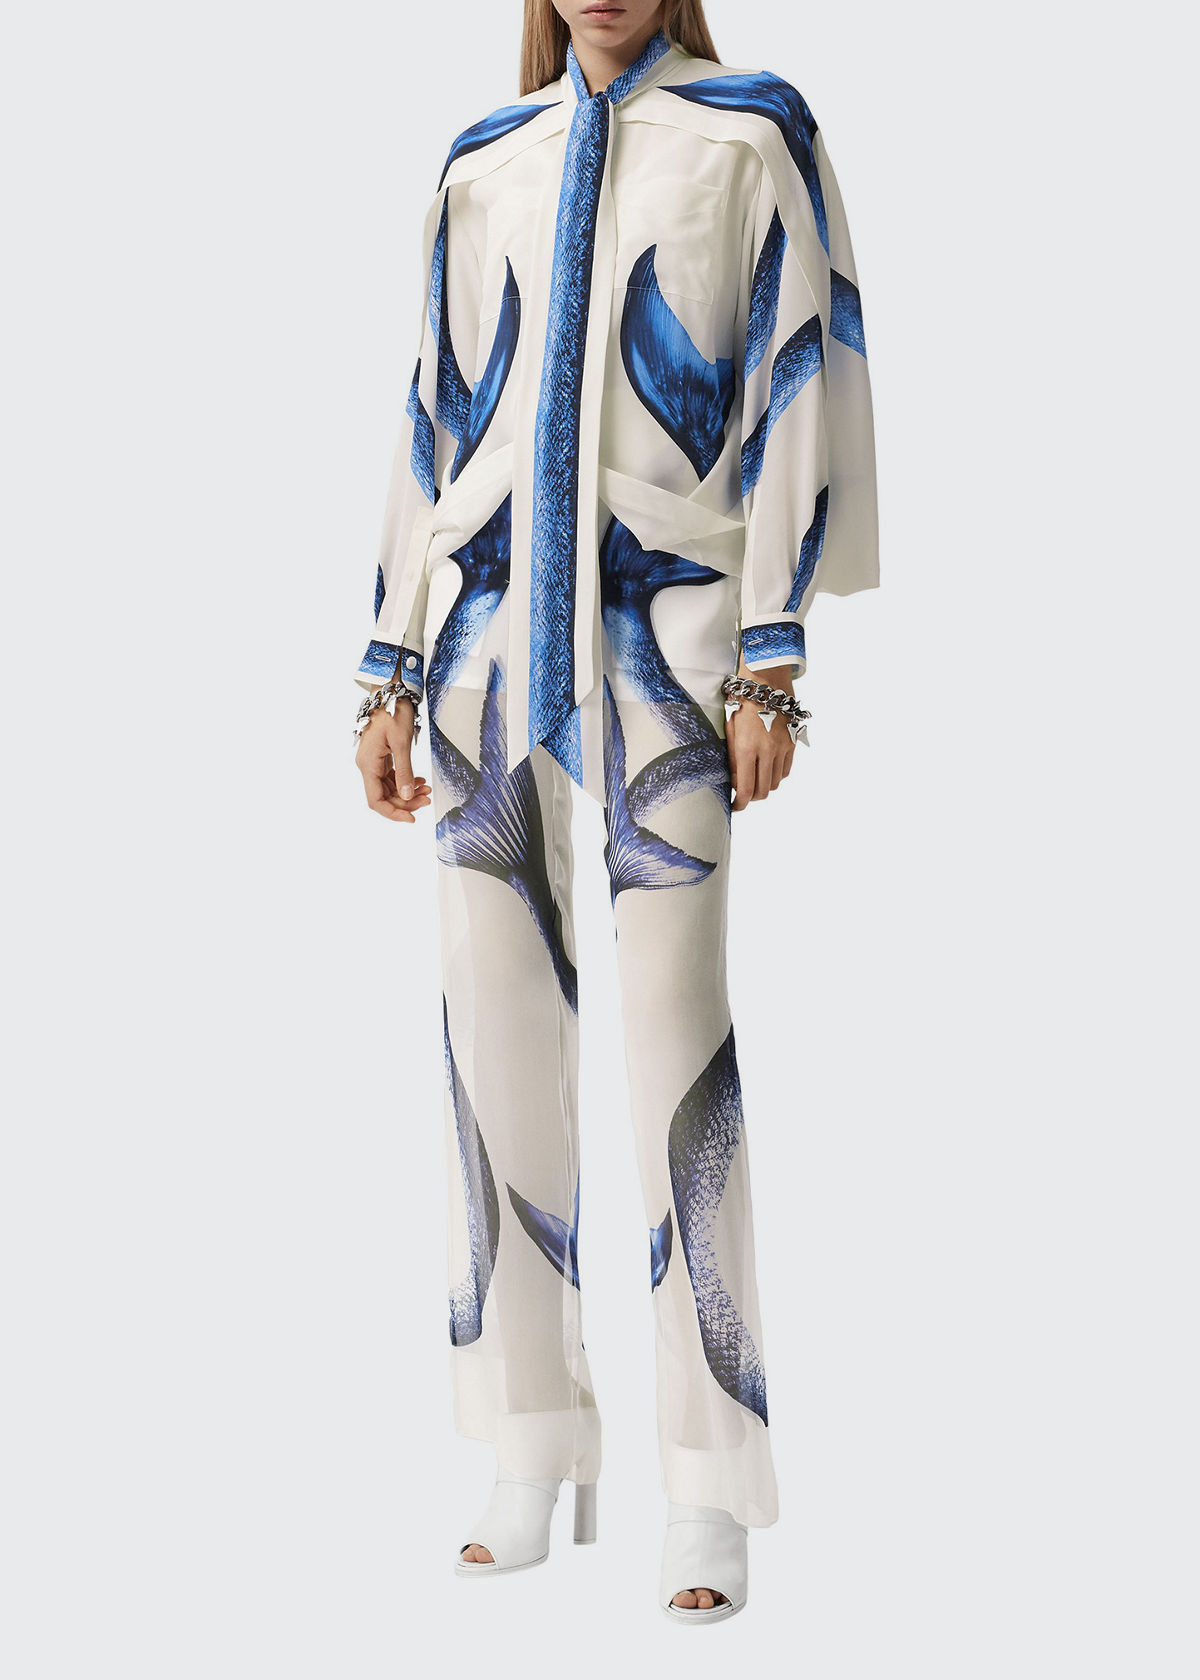 Burberry MERMAID TAIL-PRINT CHIFFON OVERLAY TROUSERS